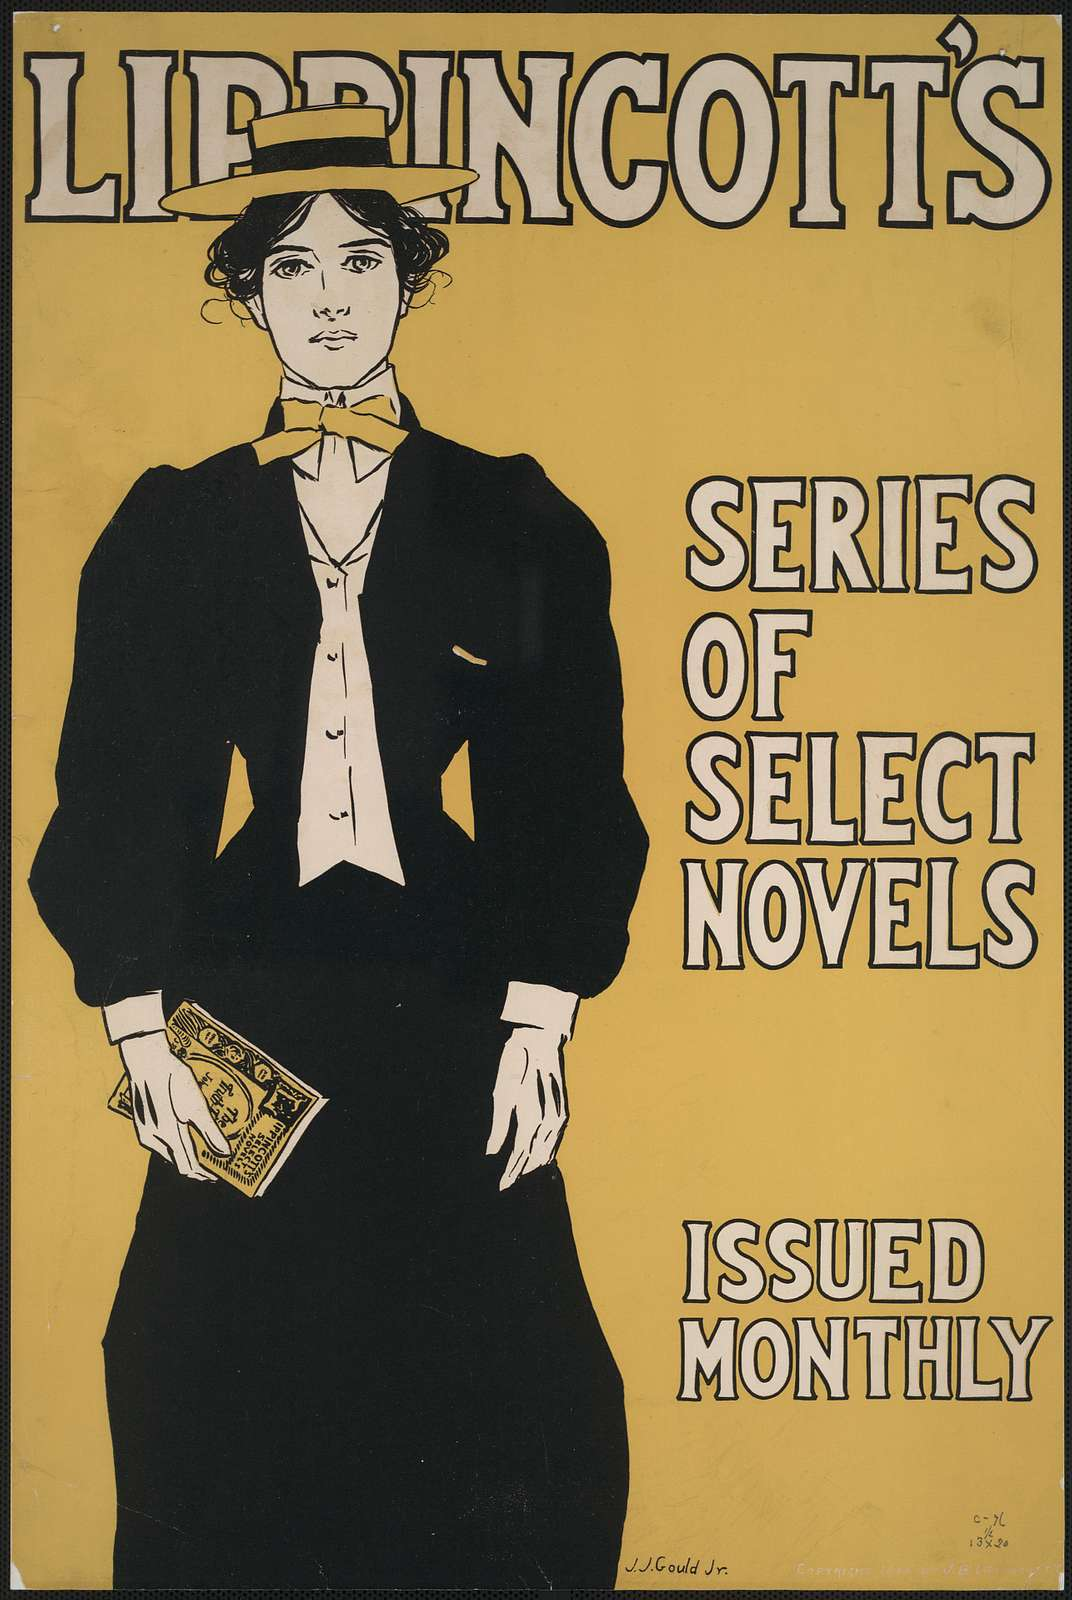 Lippincott's series of select novels, issued monthly / J.J. Gould, Jr.